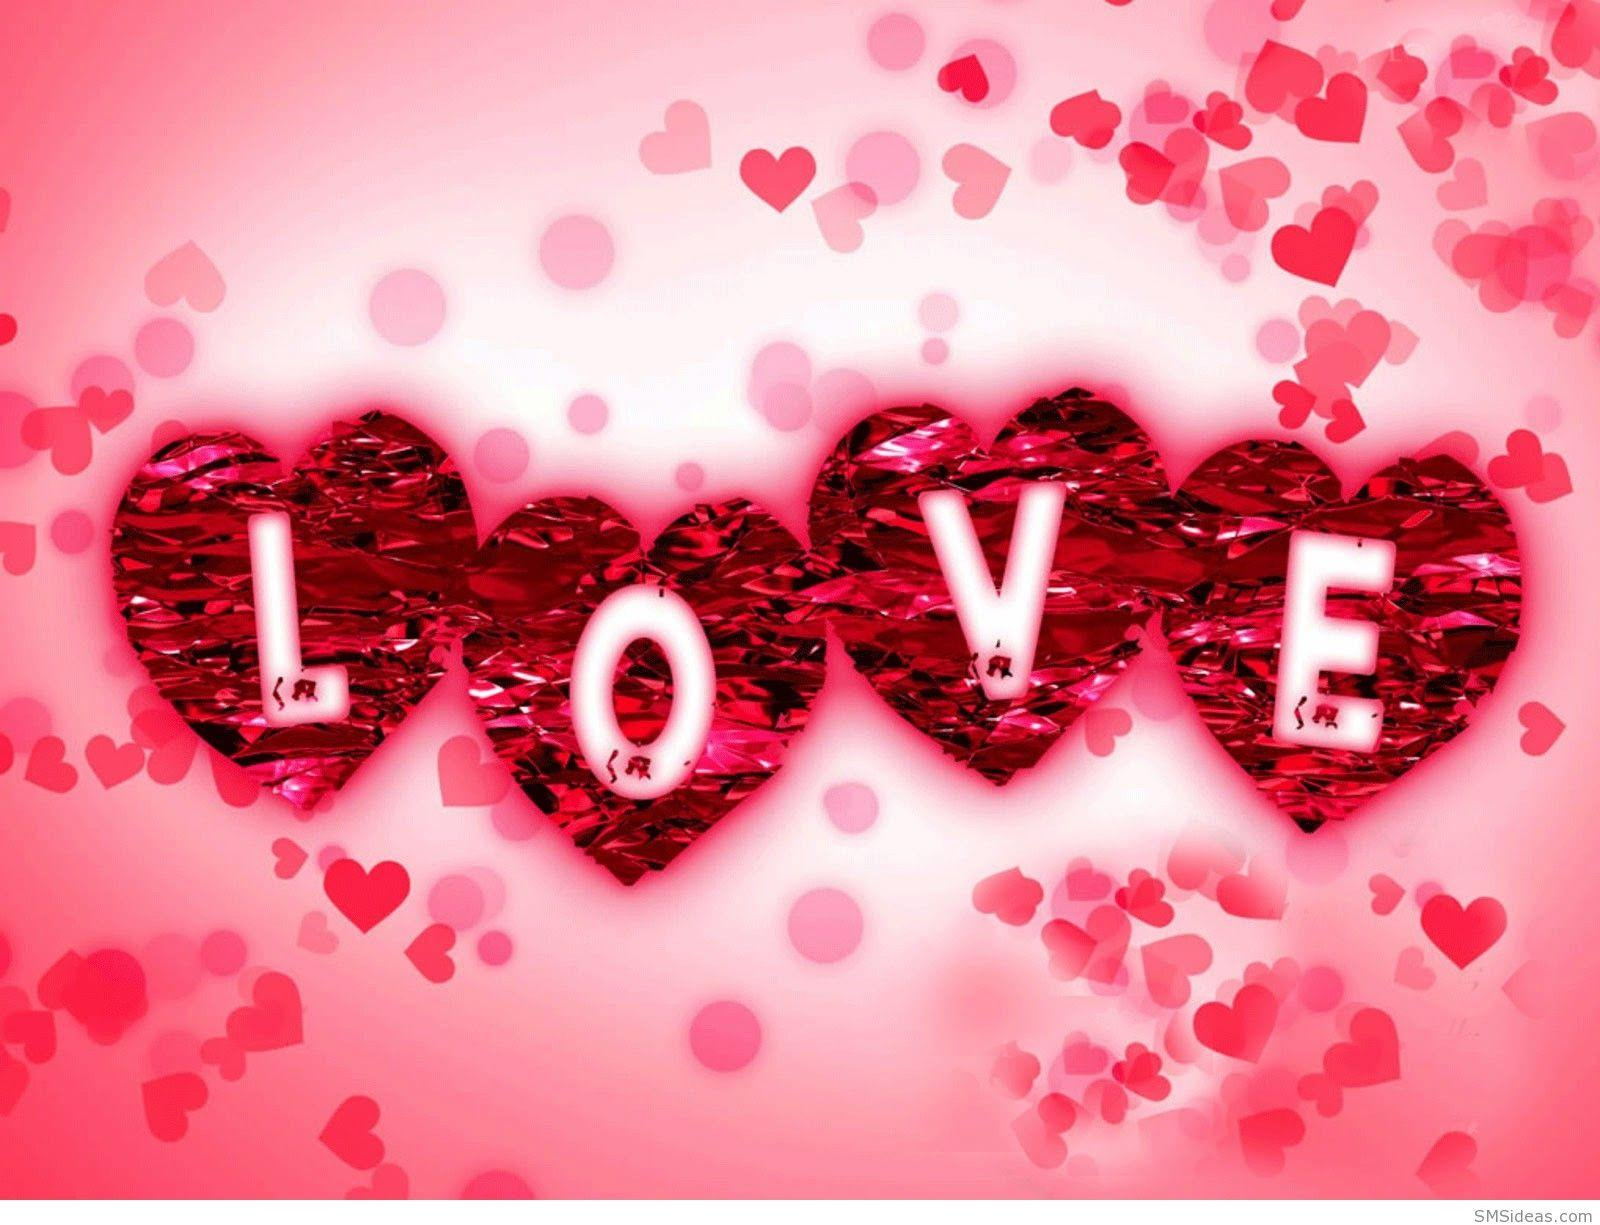 Love wallpapers 2015